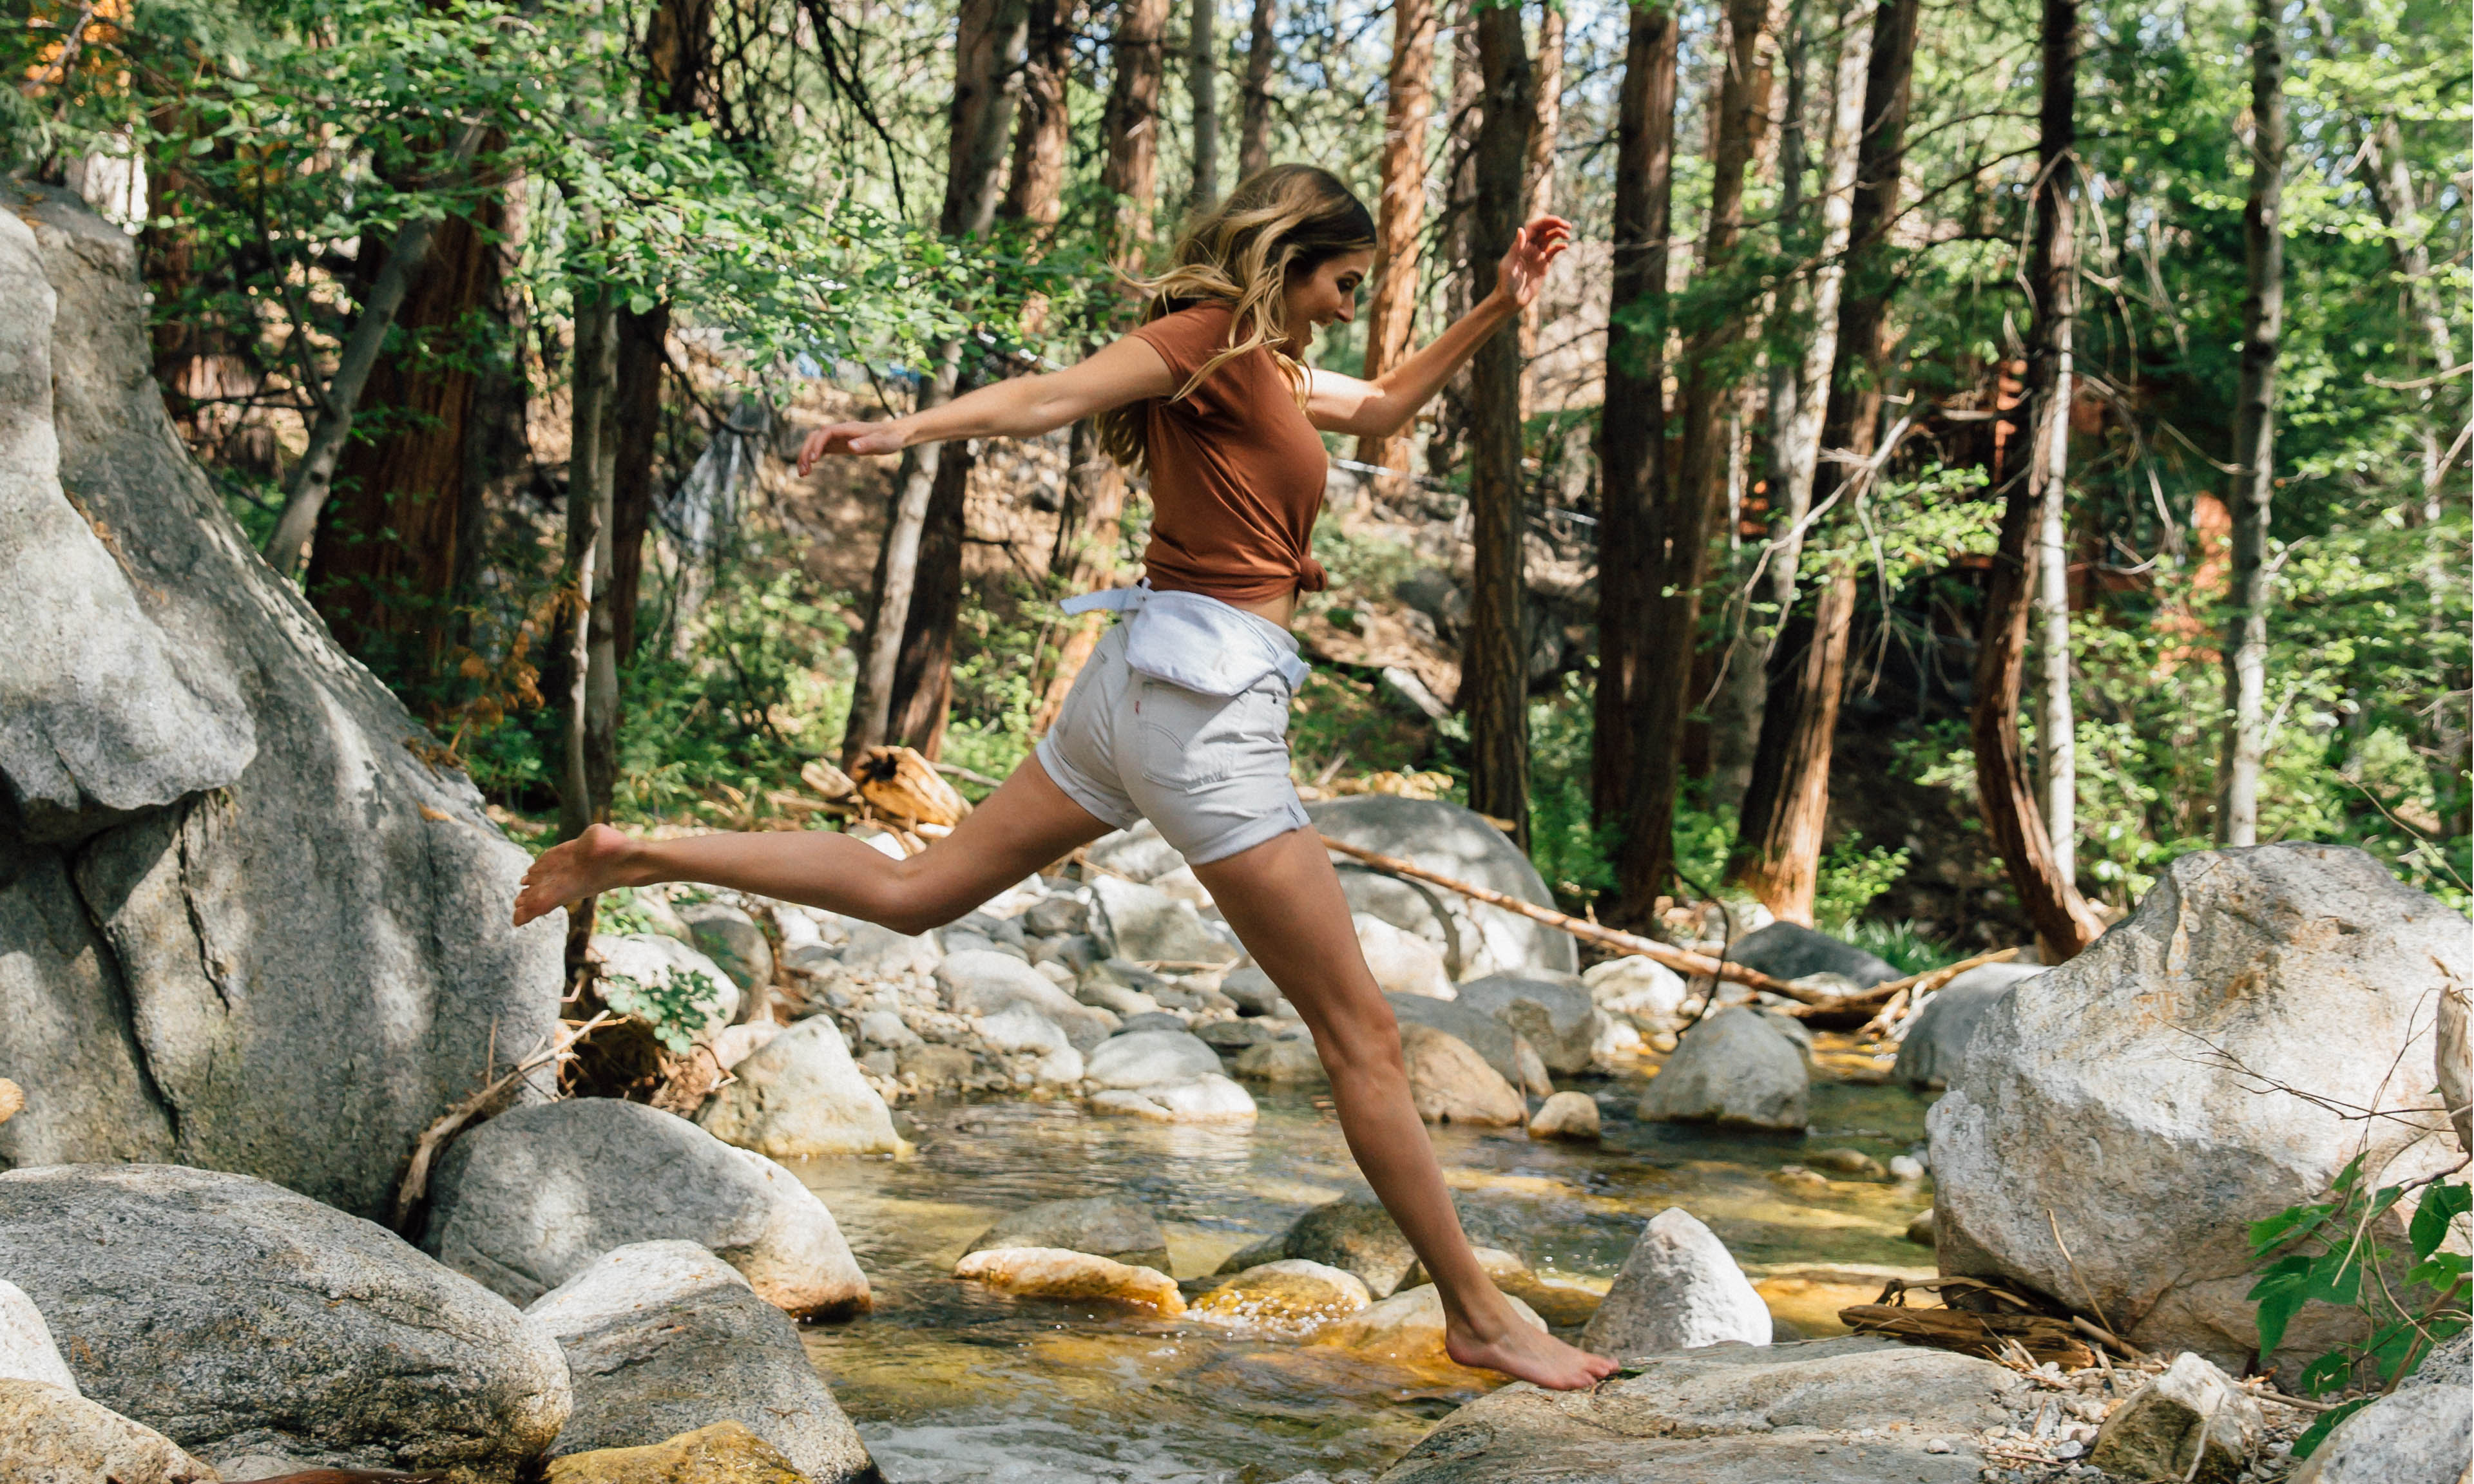 Woman energetically leaps across a small river